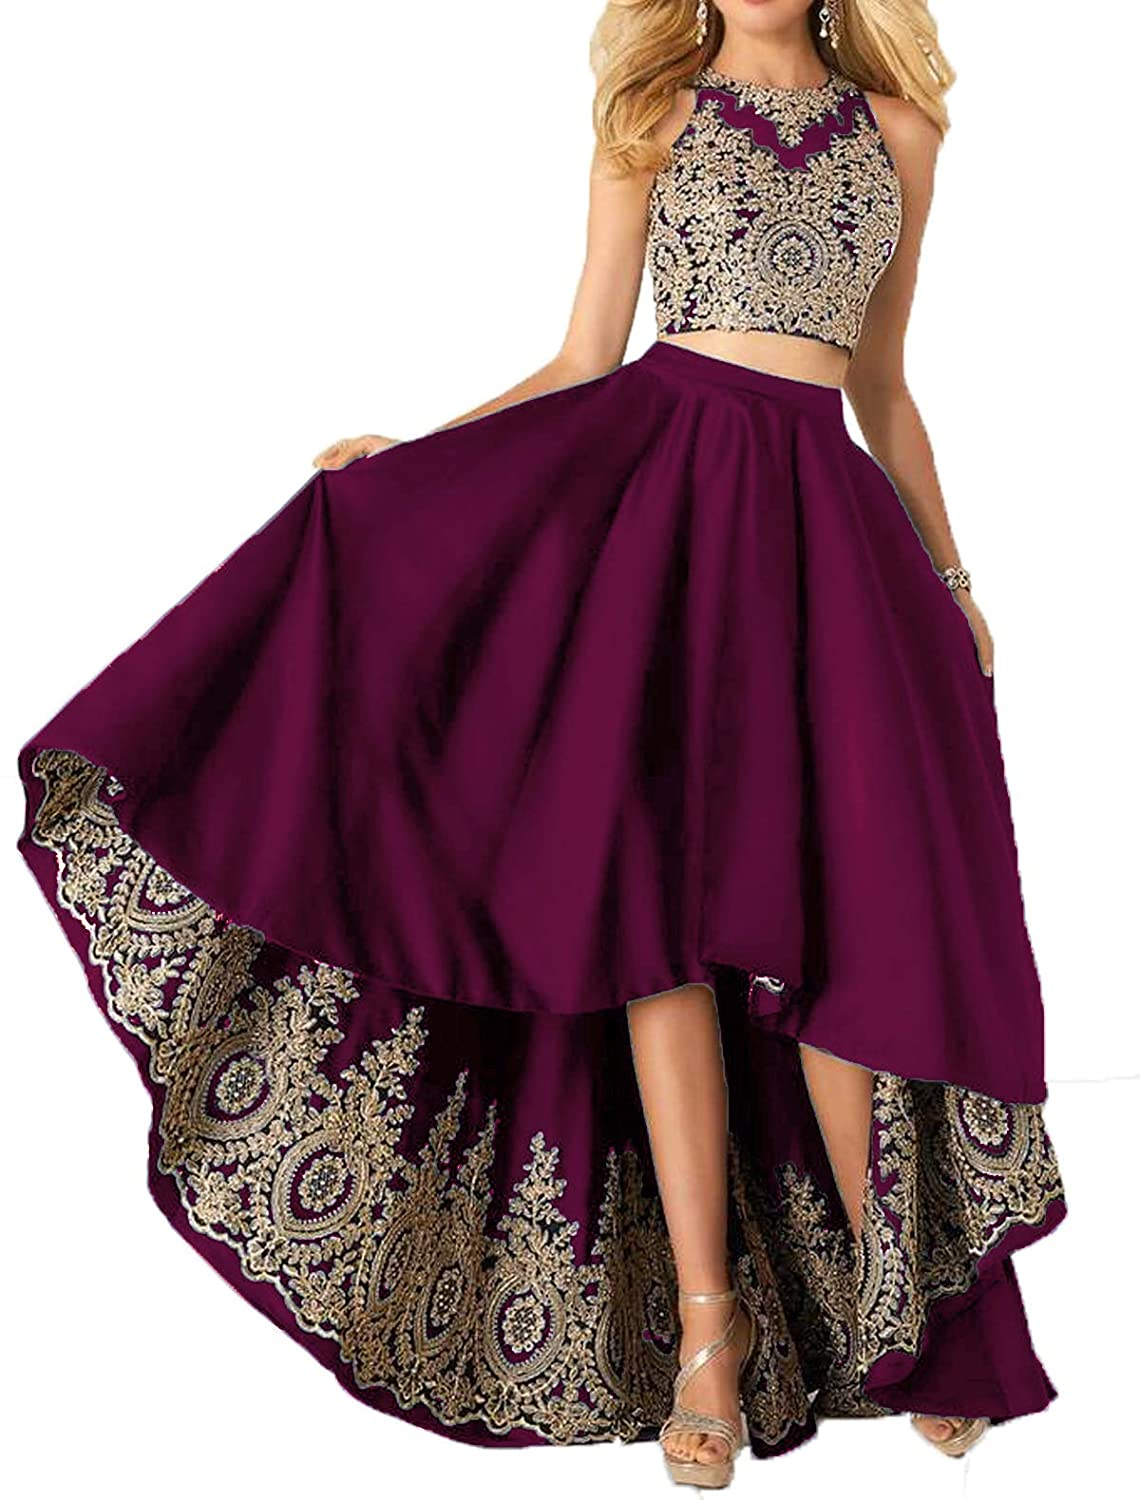 Fuchsia Udresses Two Piece Homecoming Satin Dress Aline Applique Lace Formal Prom Gowns